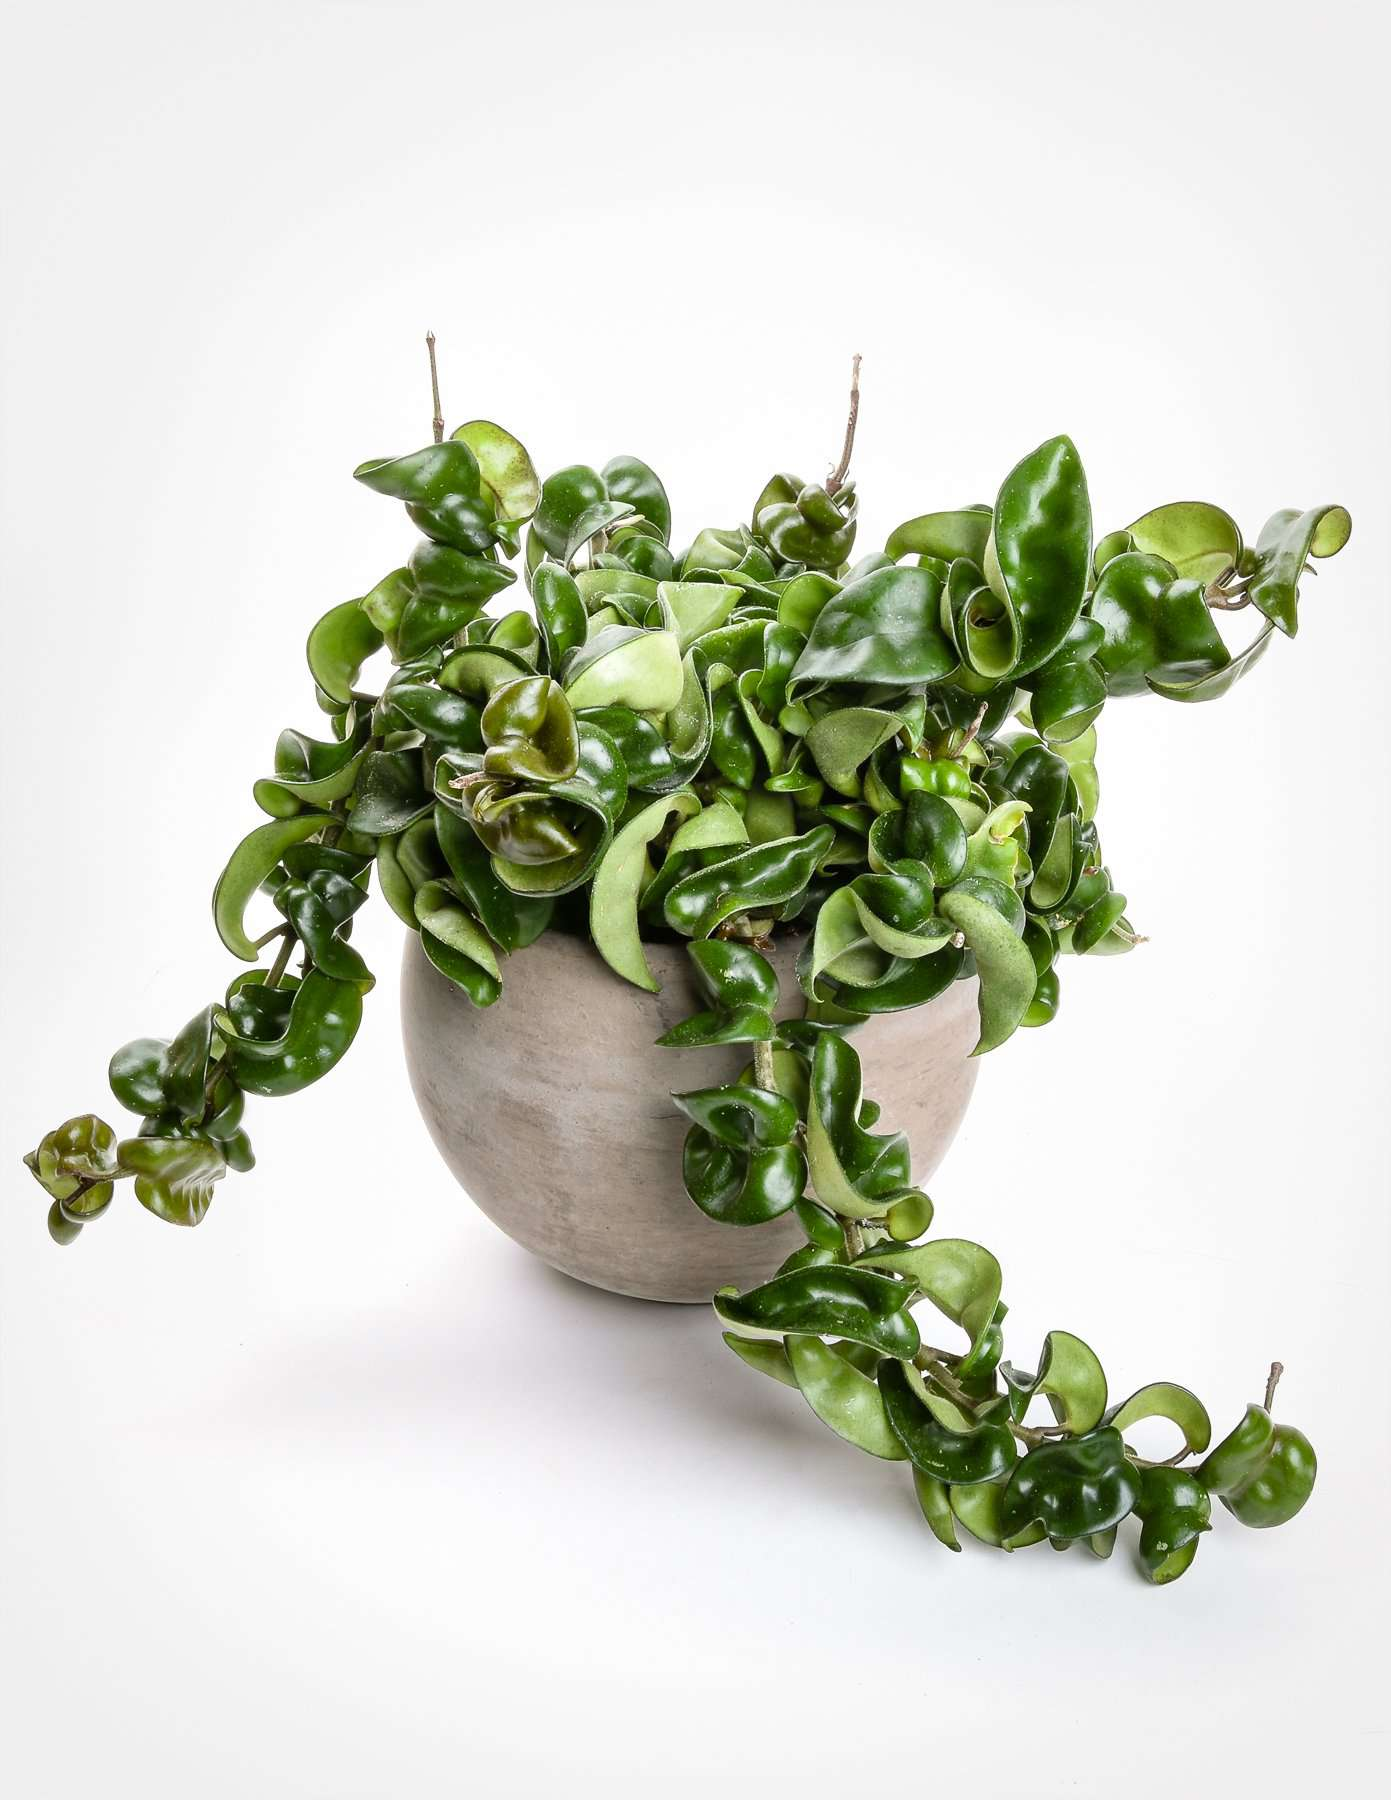 Trailing rope hoya in a pot